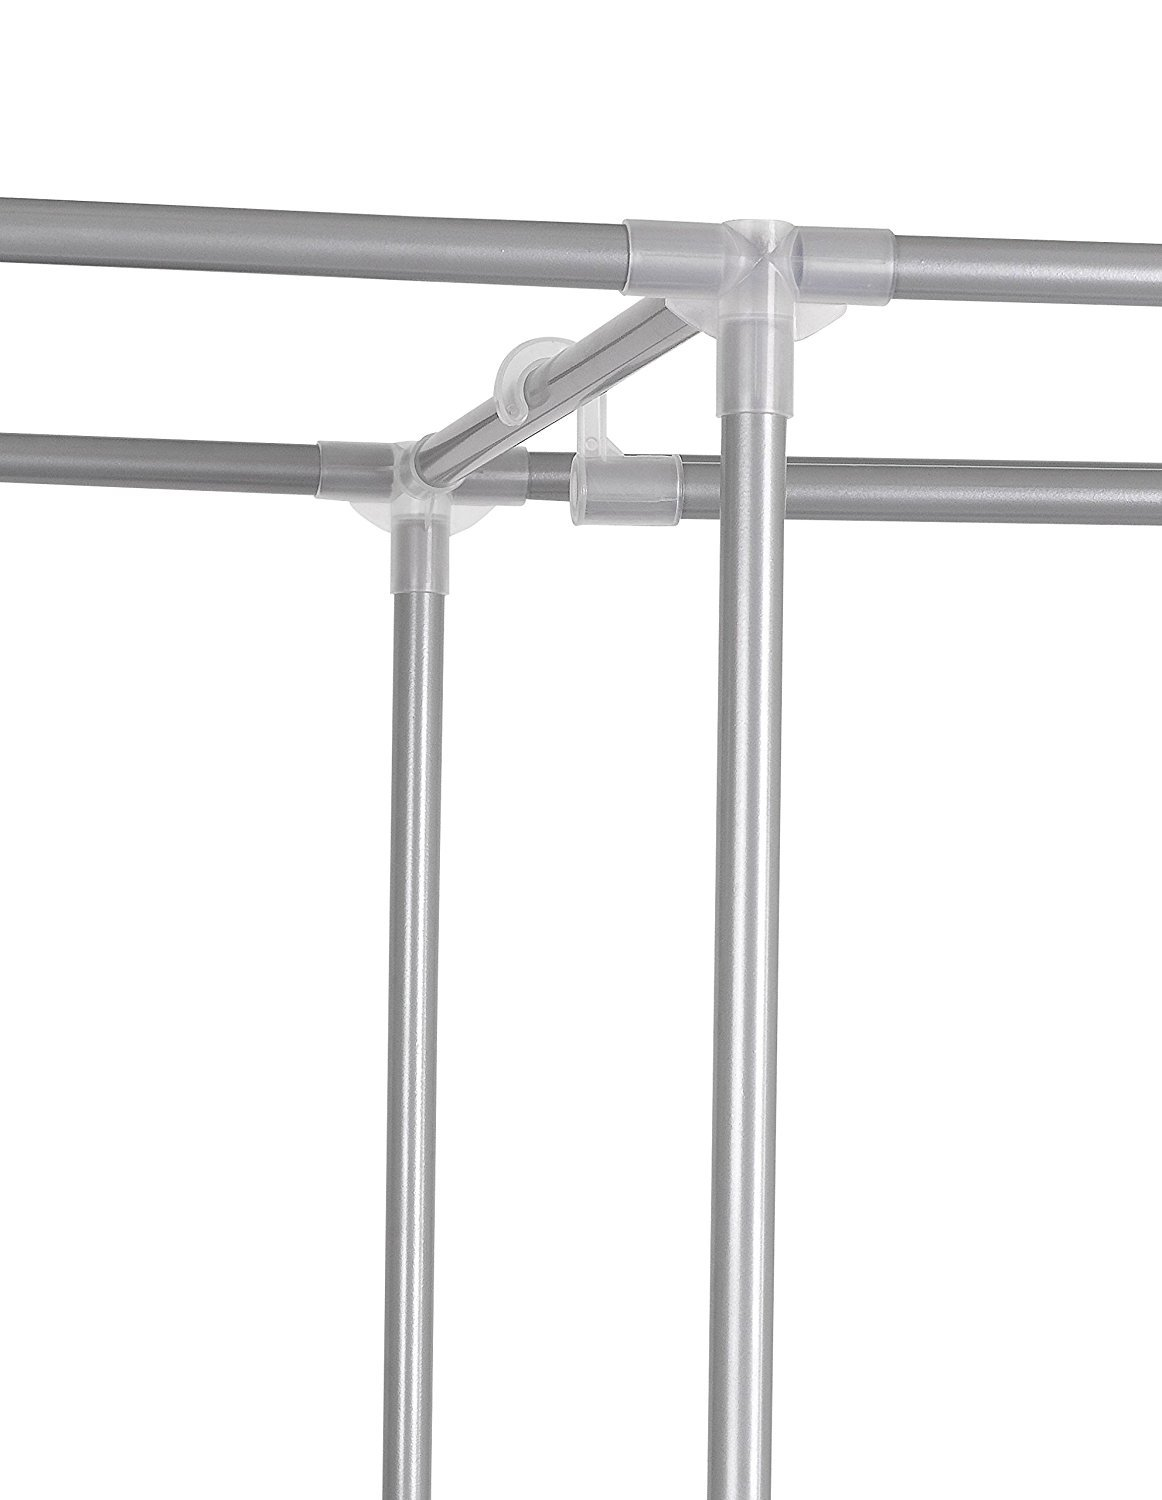 FloridaBrands Portable Closet Wardrobe - 62'' Clothes Closet Storage Organizer and Non-Woven Fabric Standing Wardrobe with Hanging Rack and 4 Shelves for Keeping Clothing Safe, Dust-Proof Cover by by FloridaBrands (Image #5)